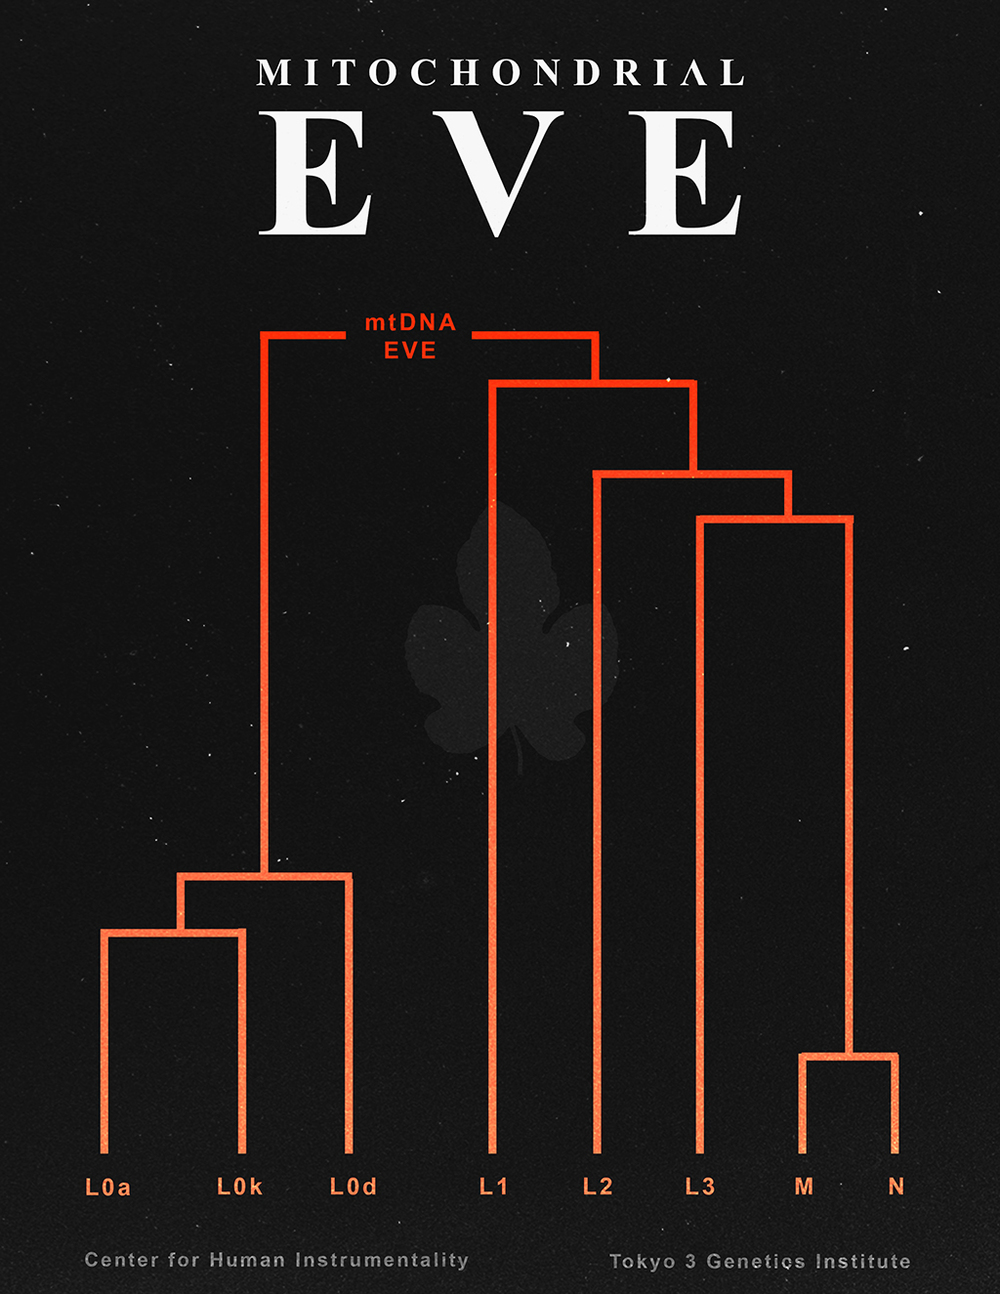 Evangelion-inspired poster about mitochondrial Eve, the earliest common ancestor to all women.